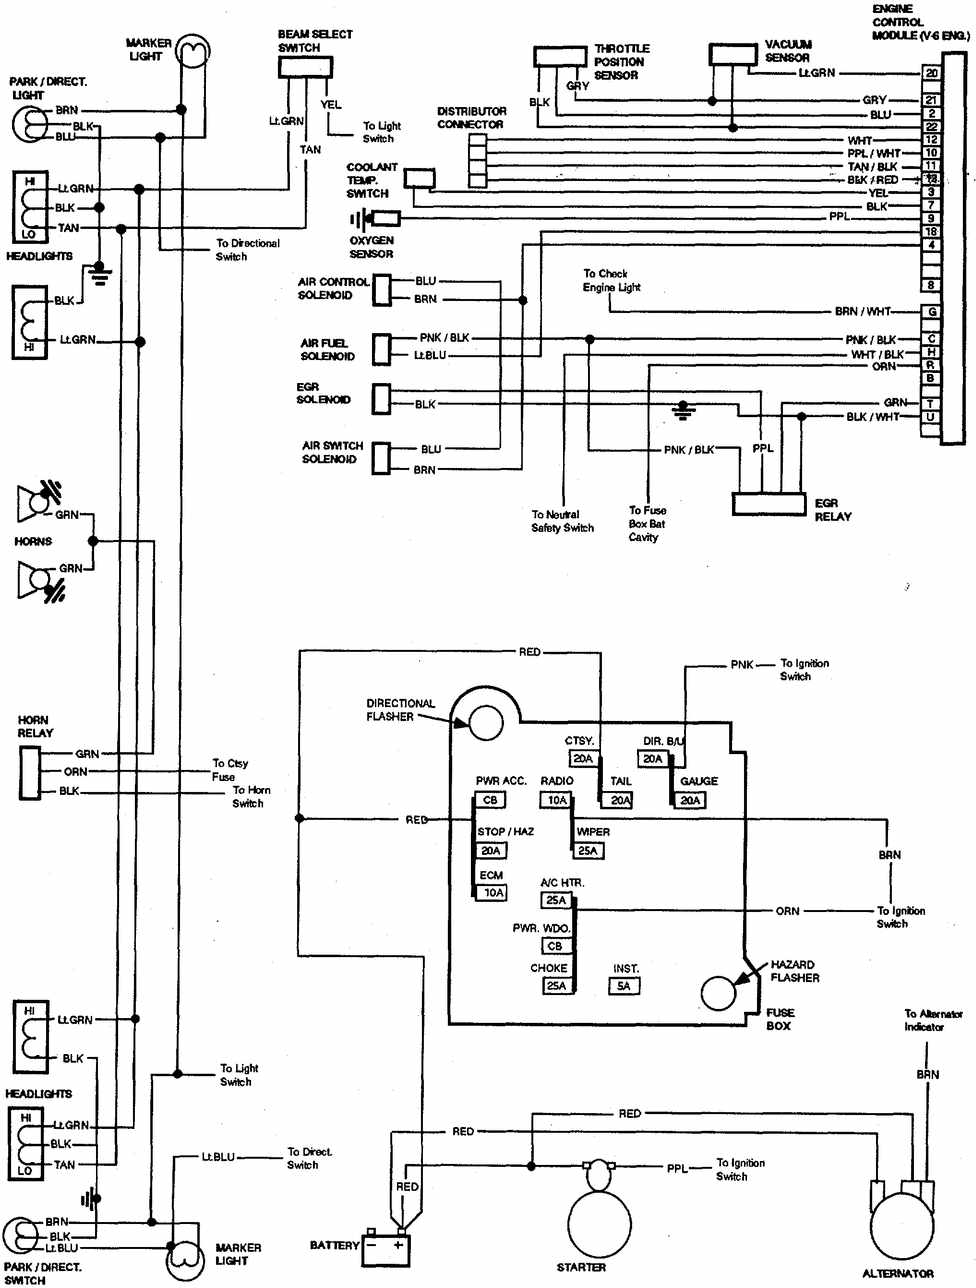 hight resolution of chevrolet v8 trucks 1981 1987 electrical wiring diagram rover 75 engine fuse box rover 75 engine